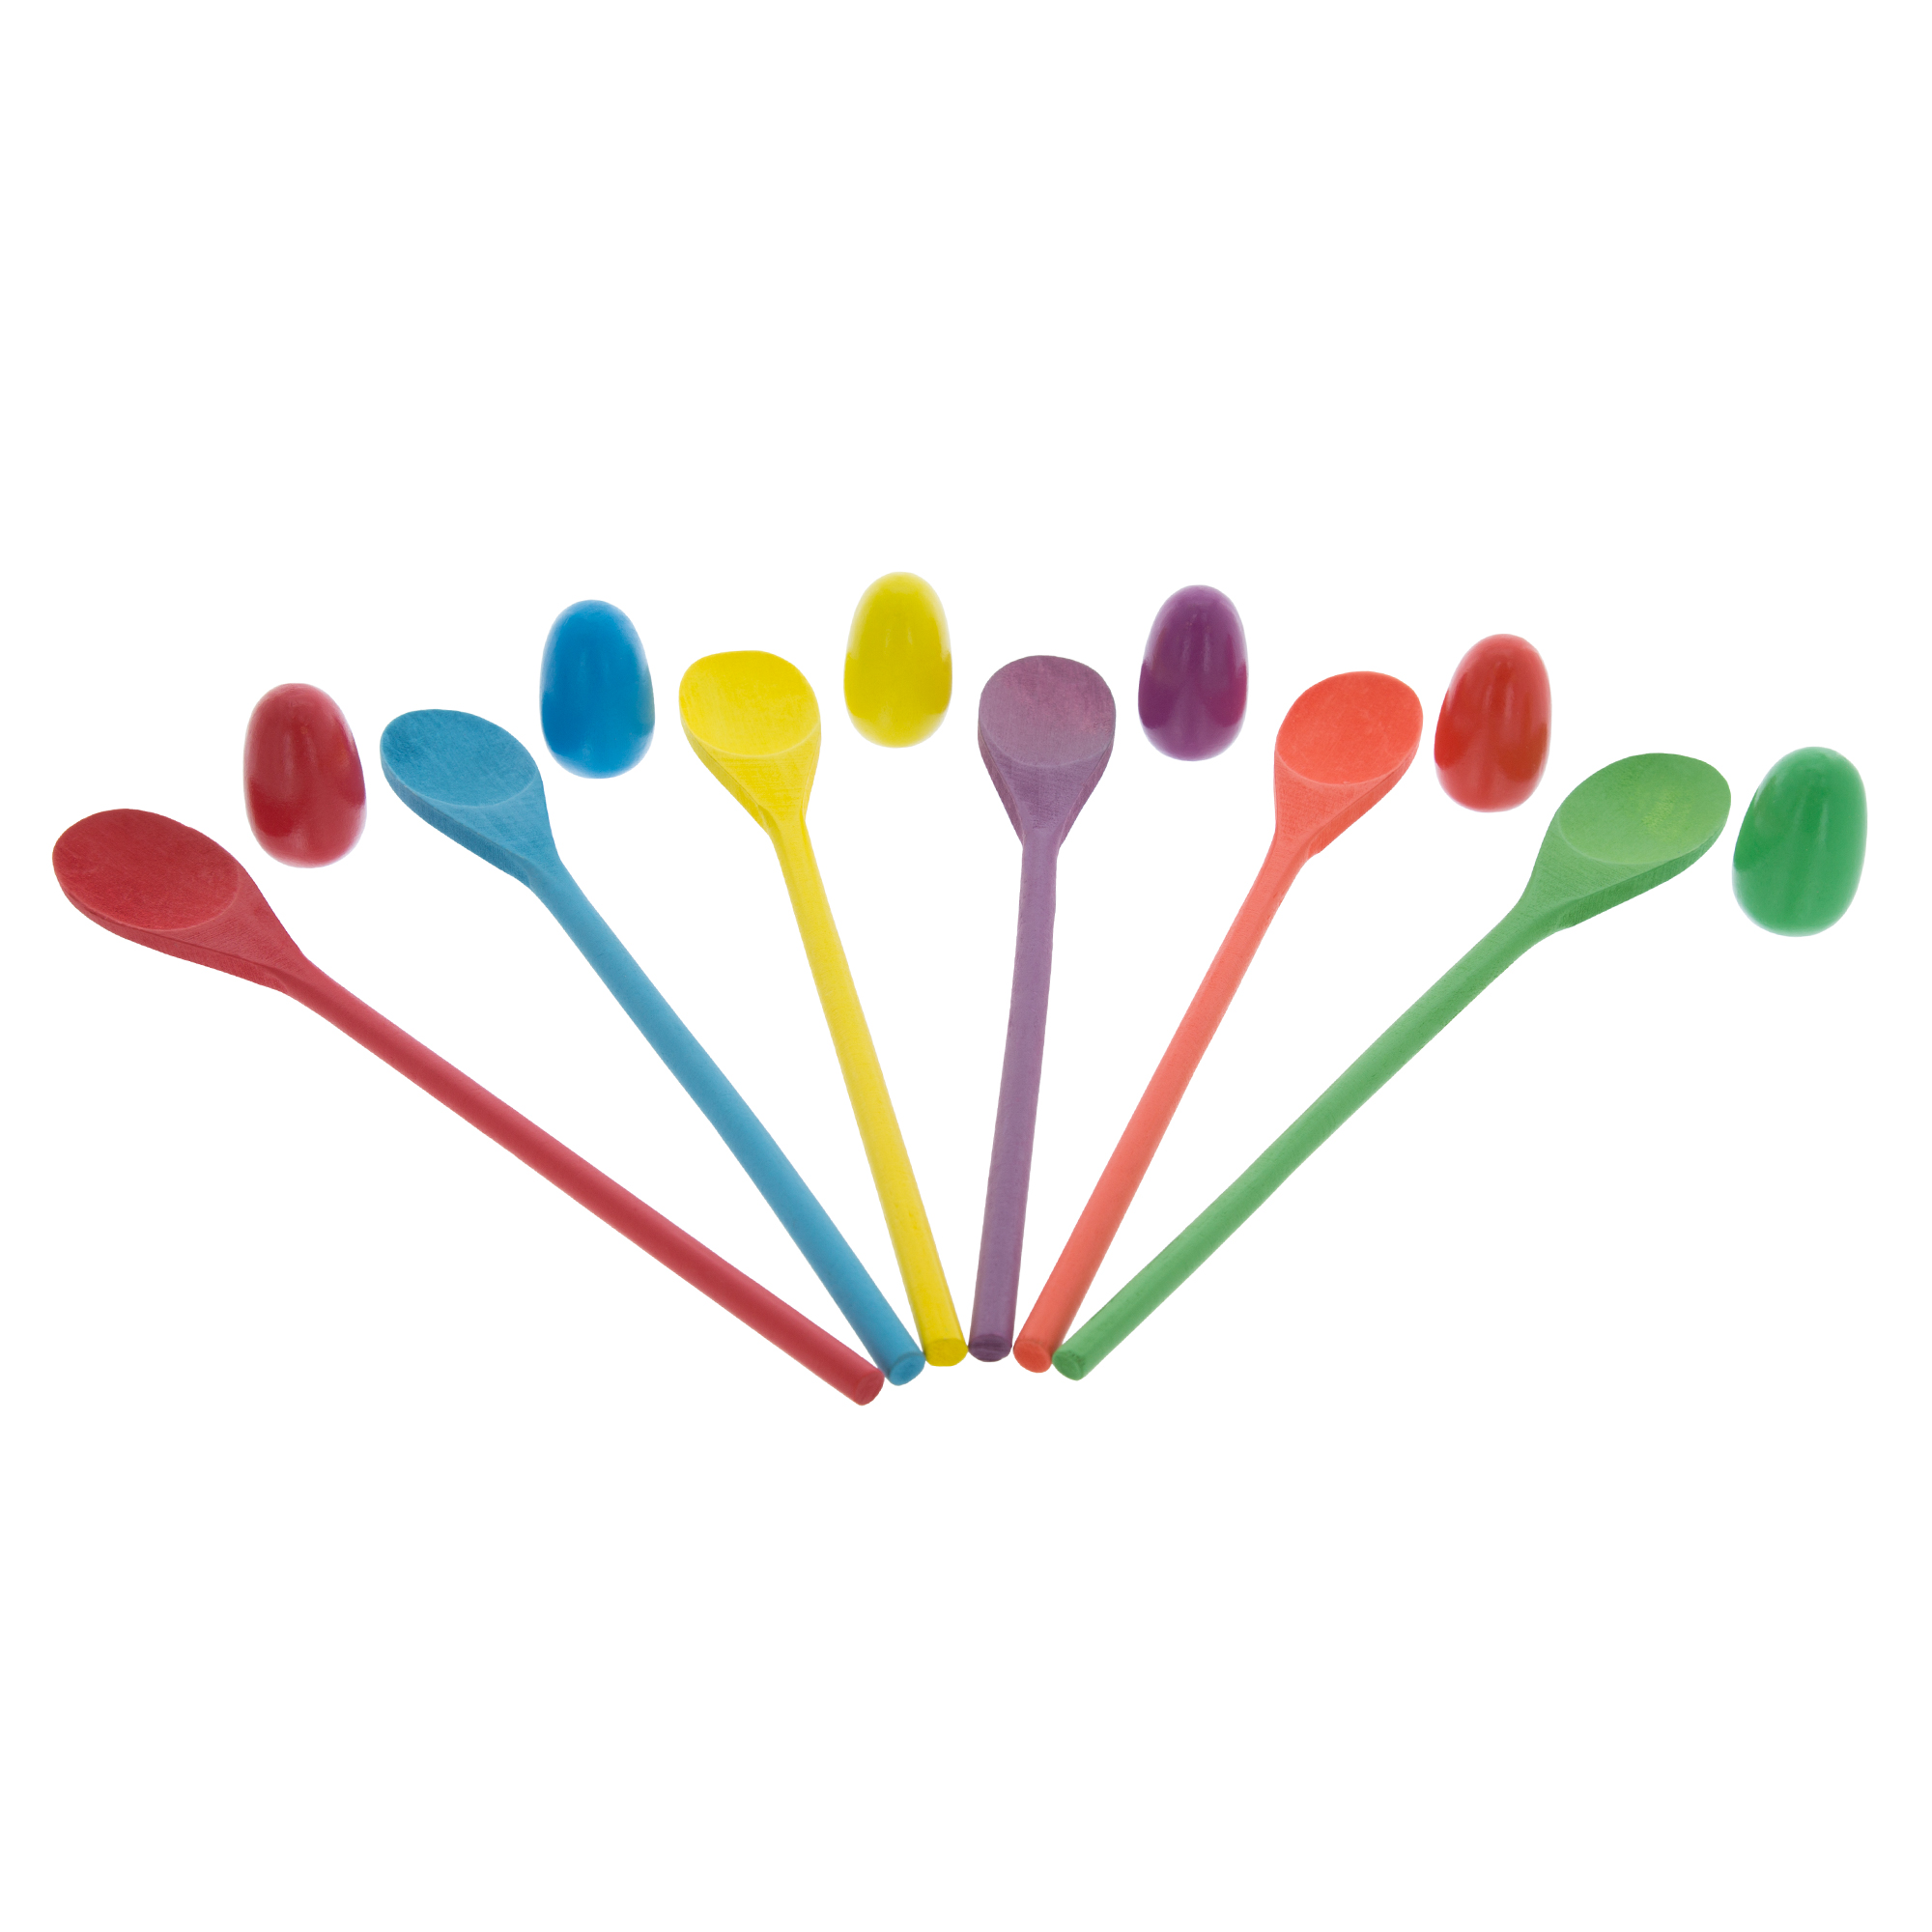 Wooden Egg and Spoon Race Game by Hey! Play!